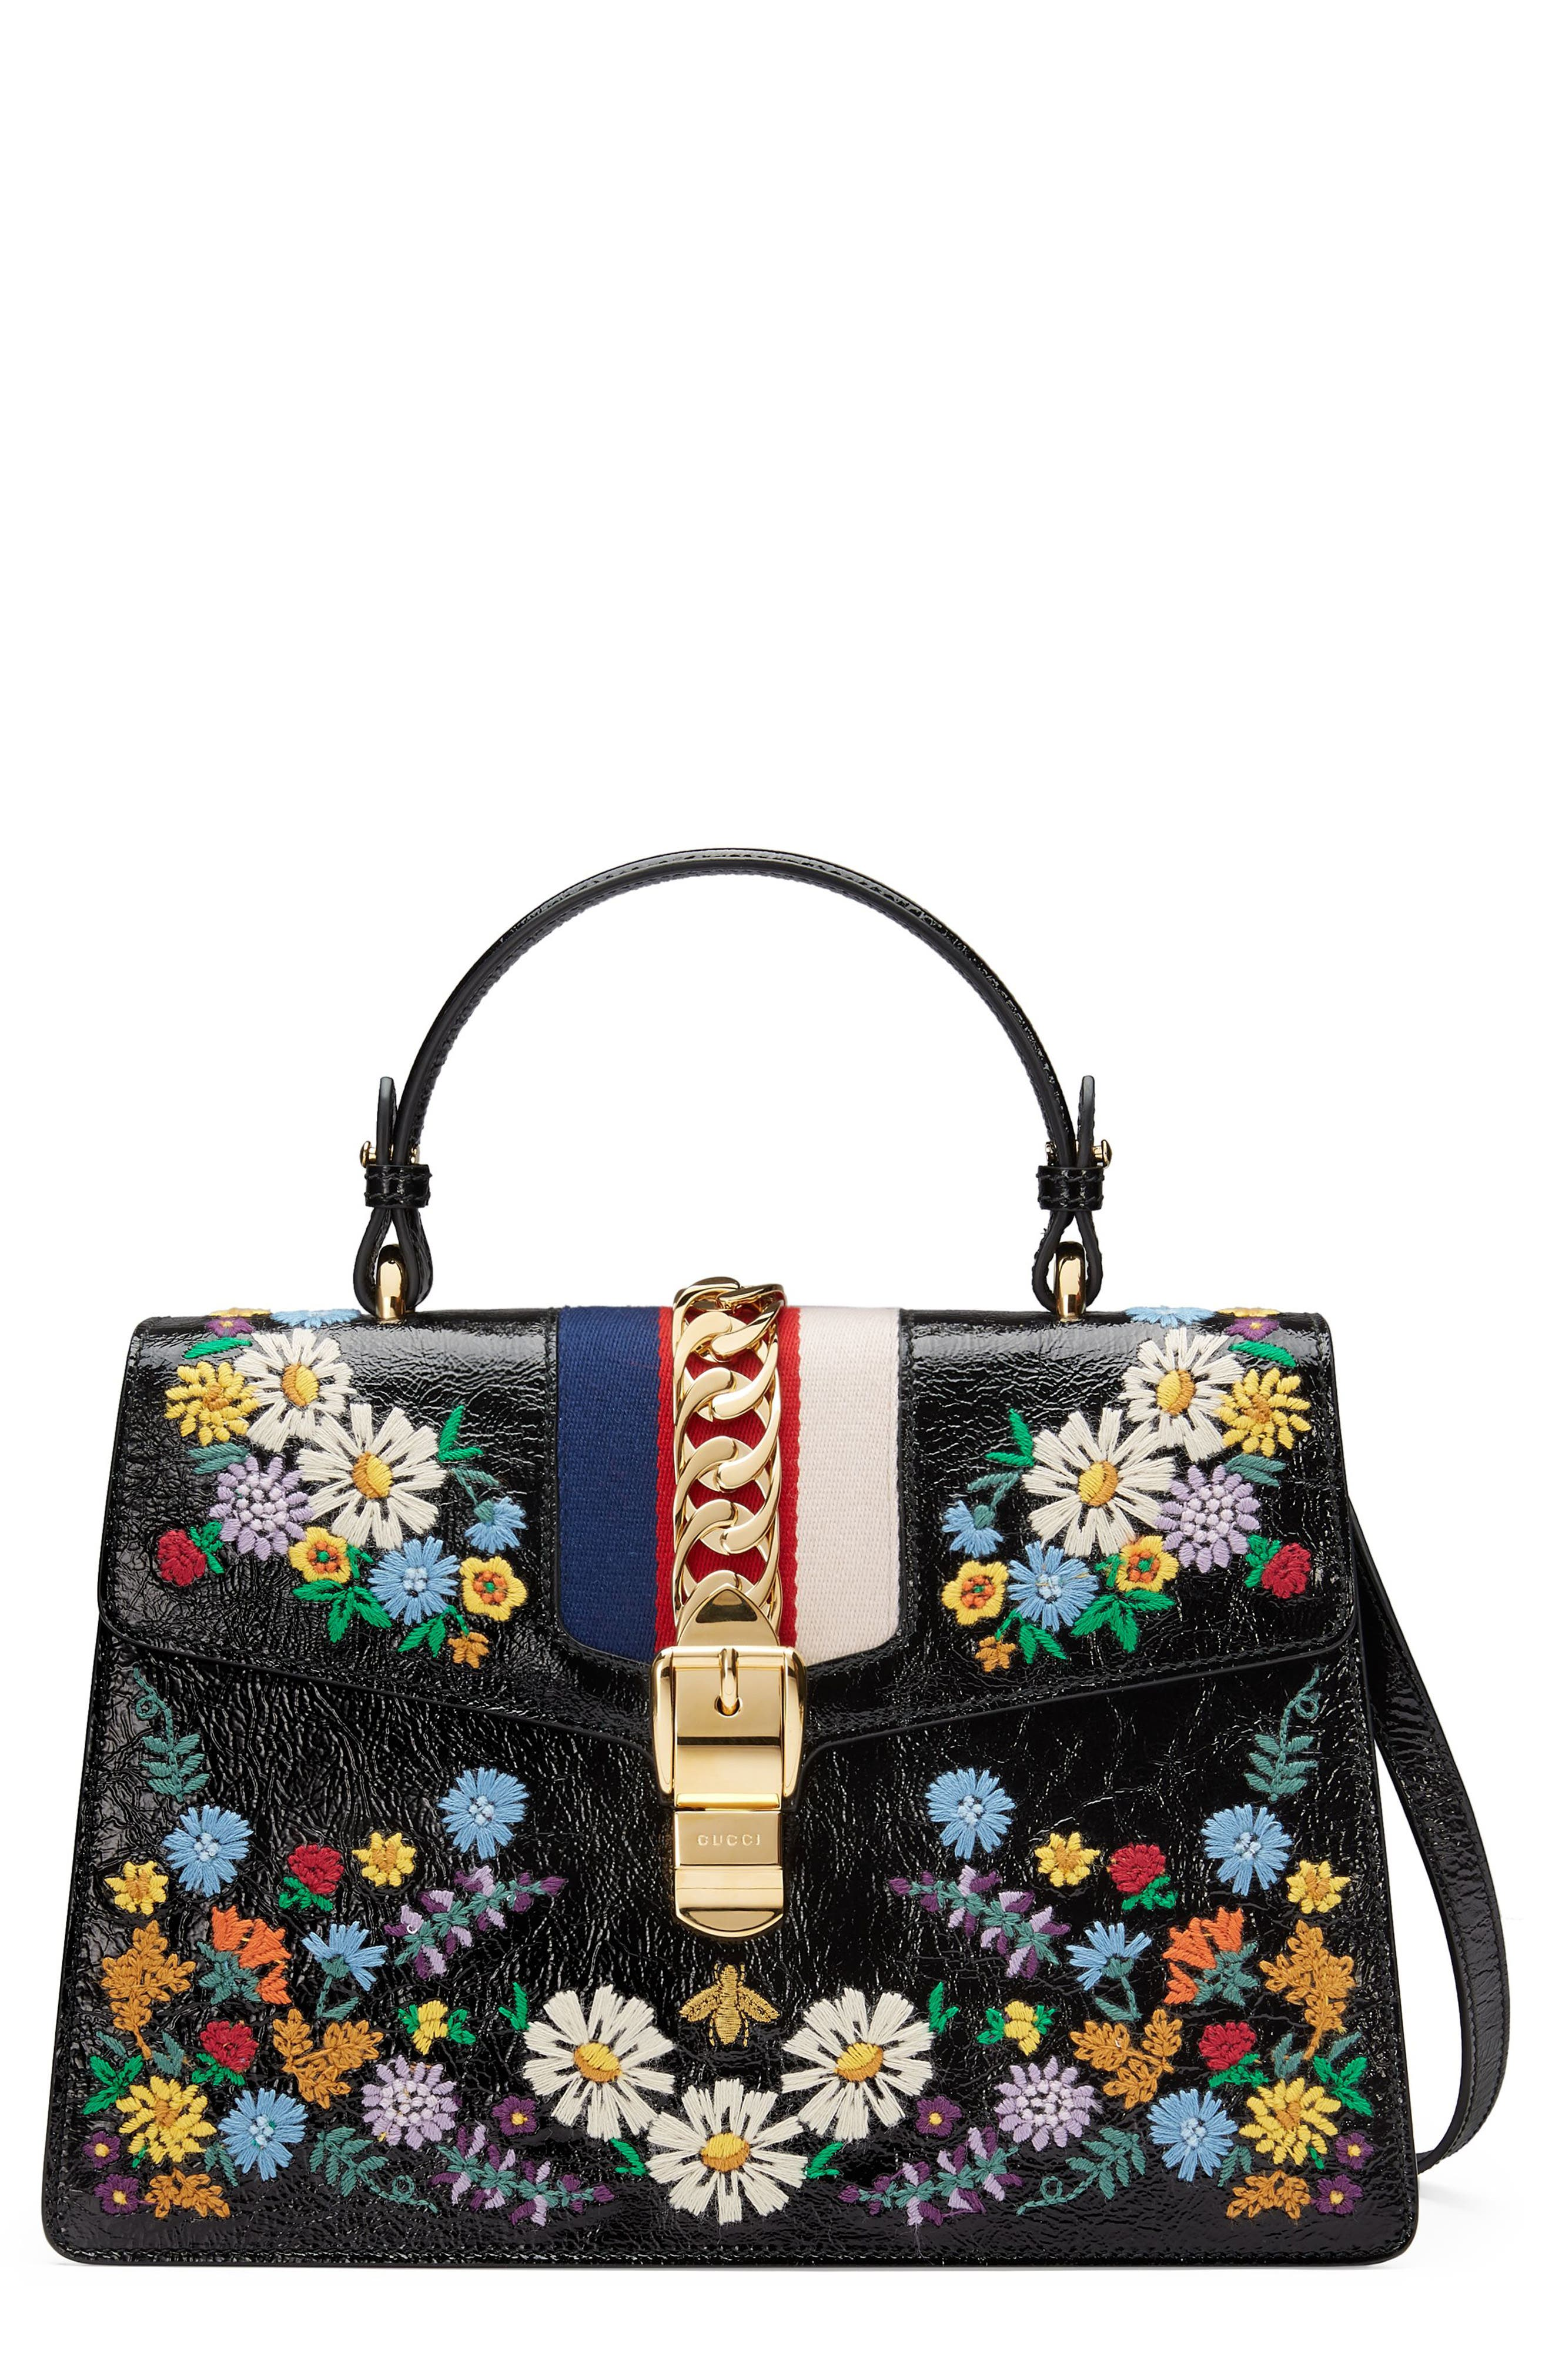 gucci bags at nordstrom. gucci medium sylvie floral embroidered top handle leather shoulder bag bags at nordstrom